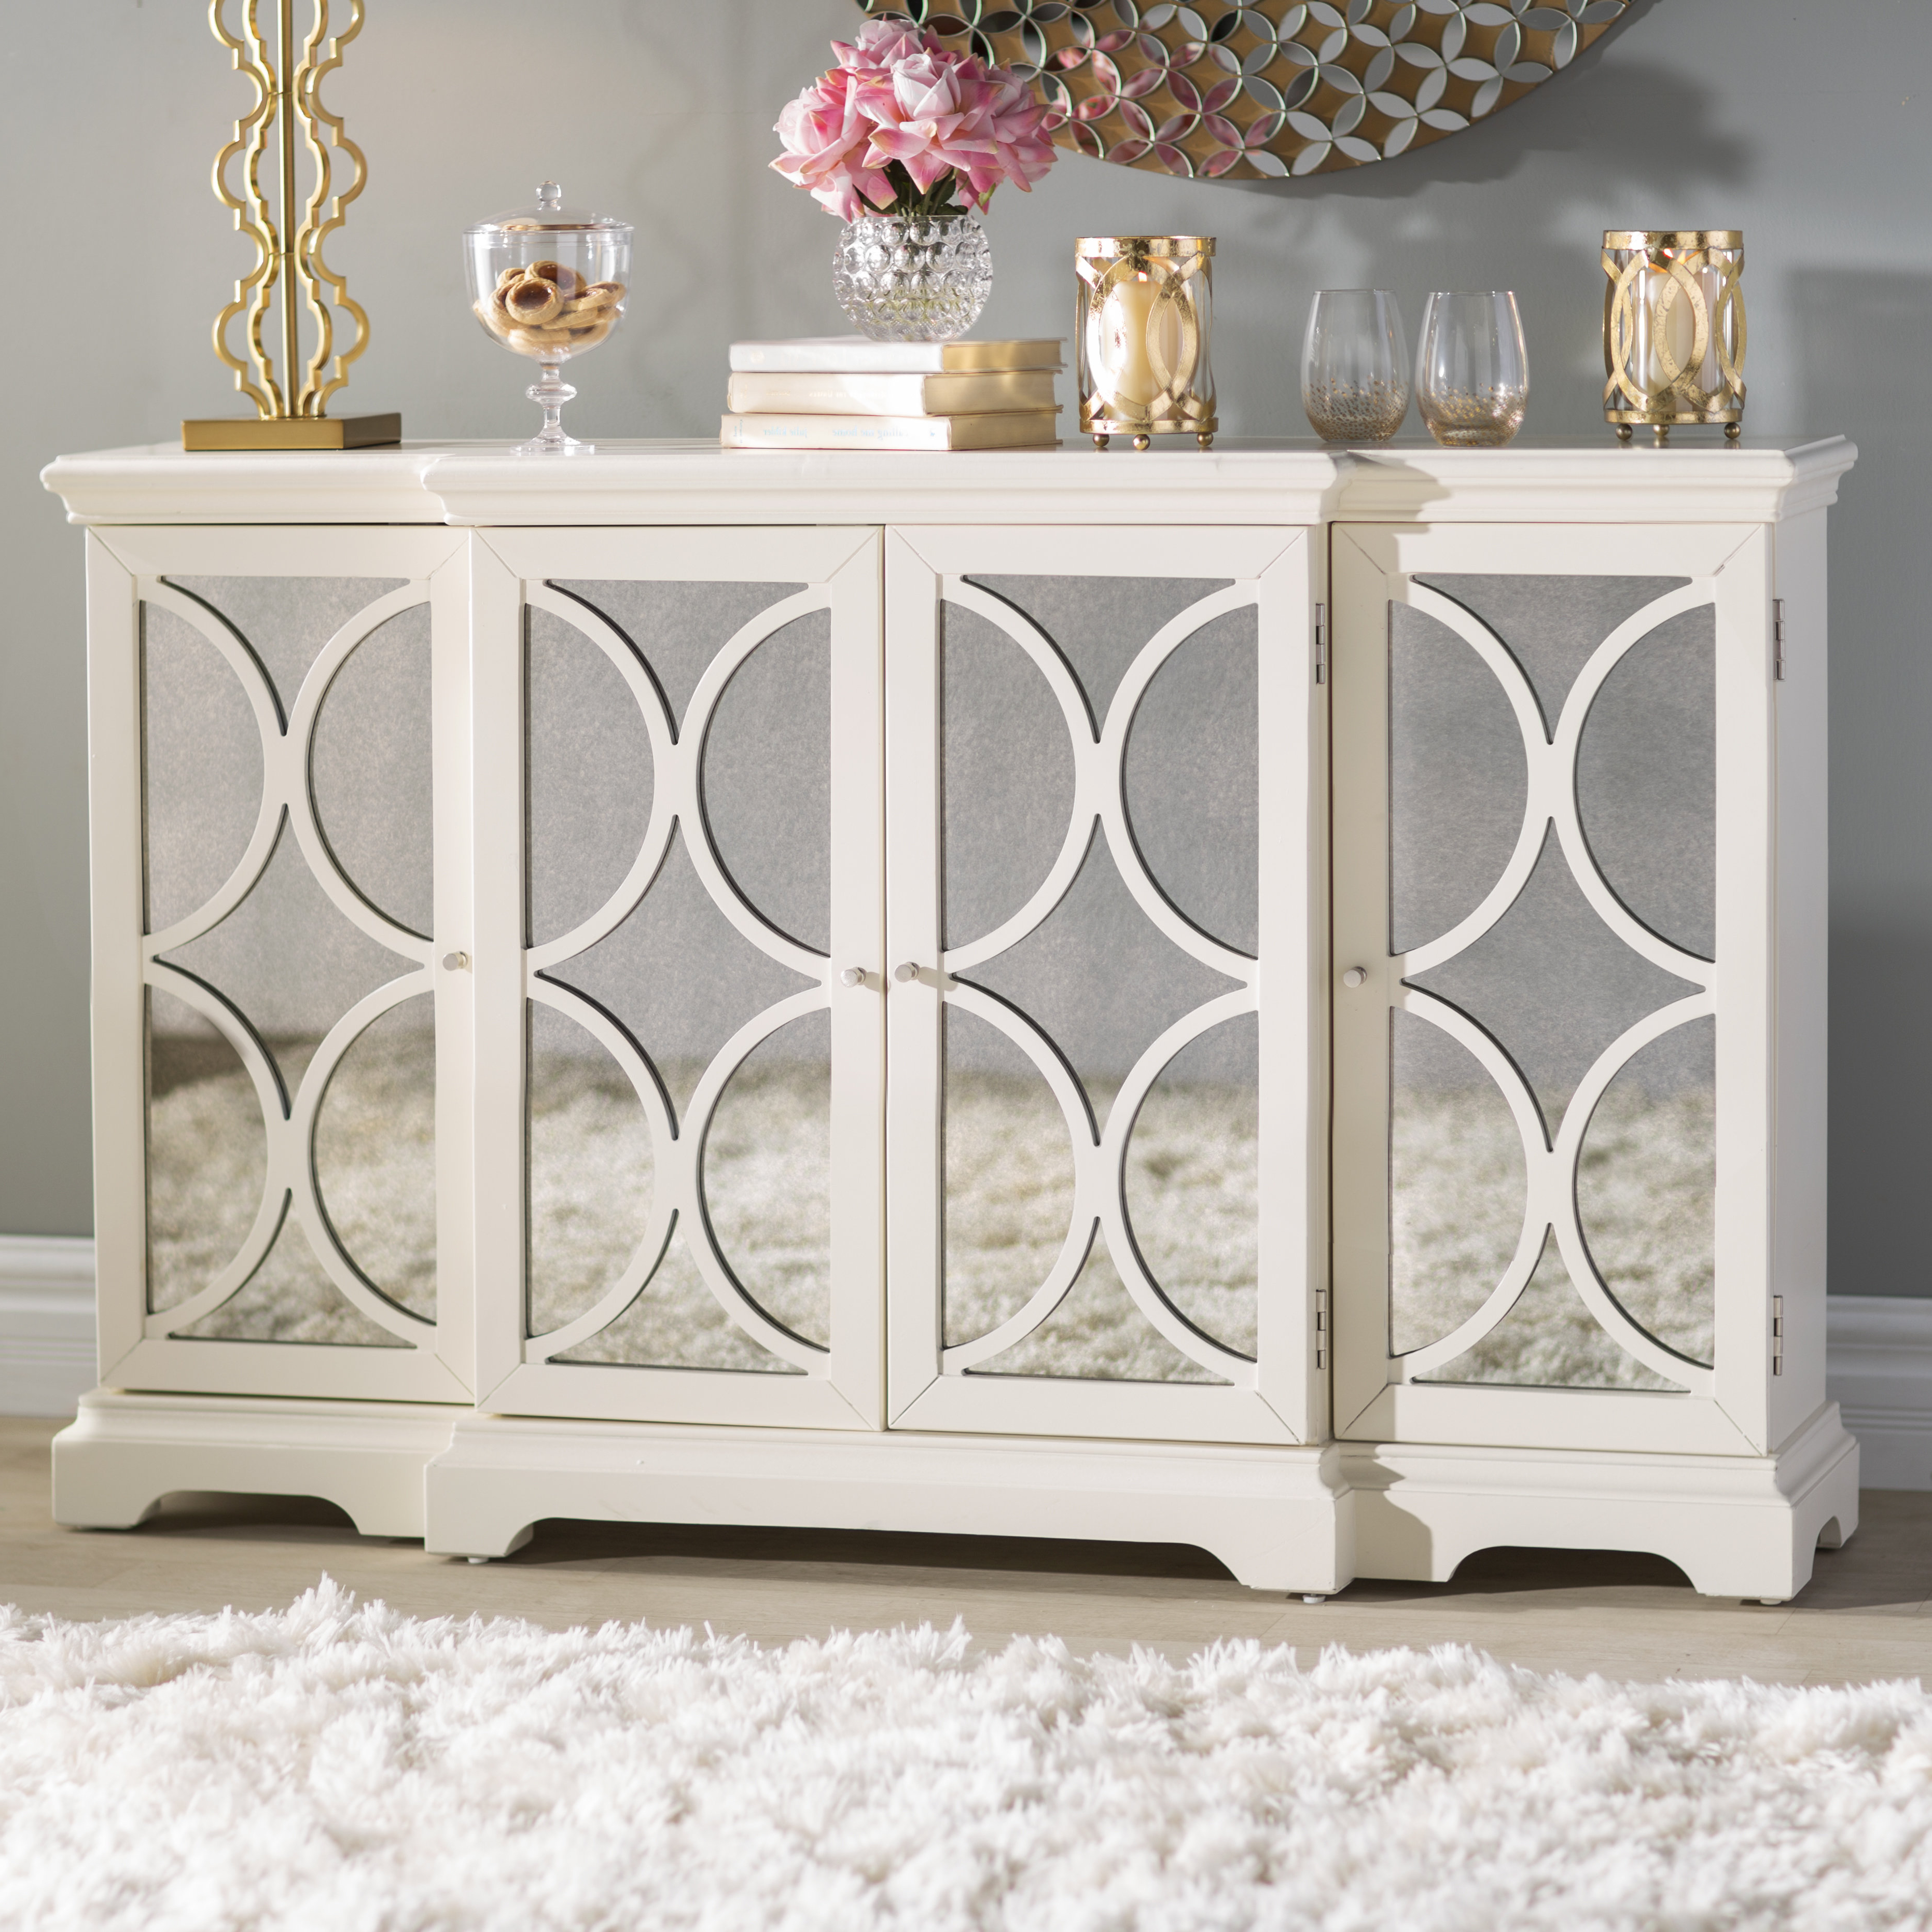 Cream Credenza | Wayfair Intended For Floral Blush Yellow Credenzas (View 9 of 20)